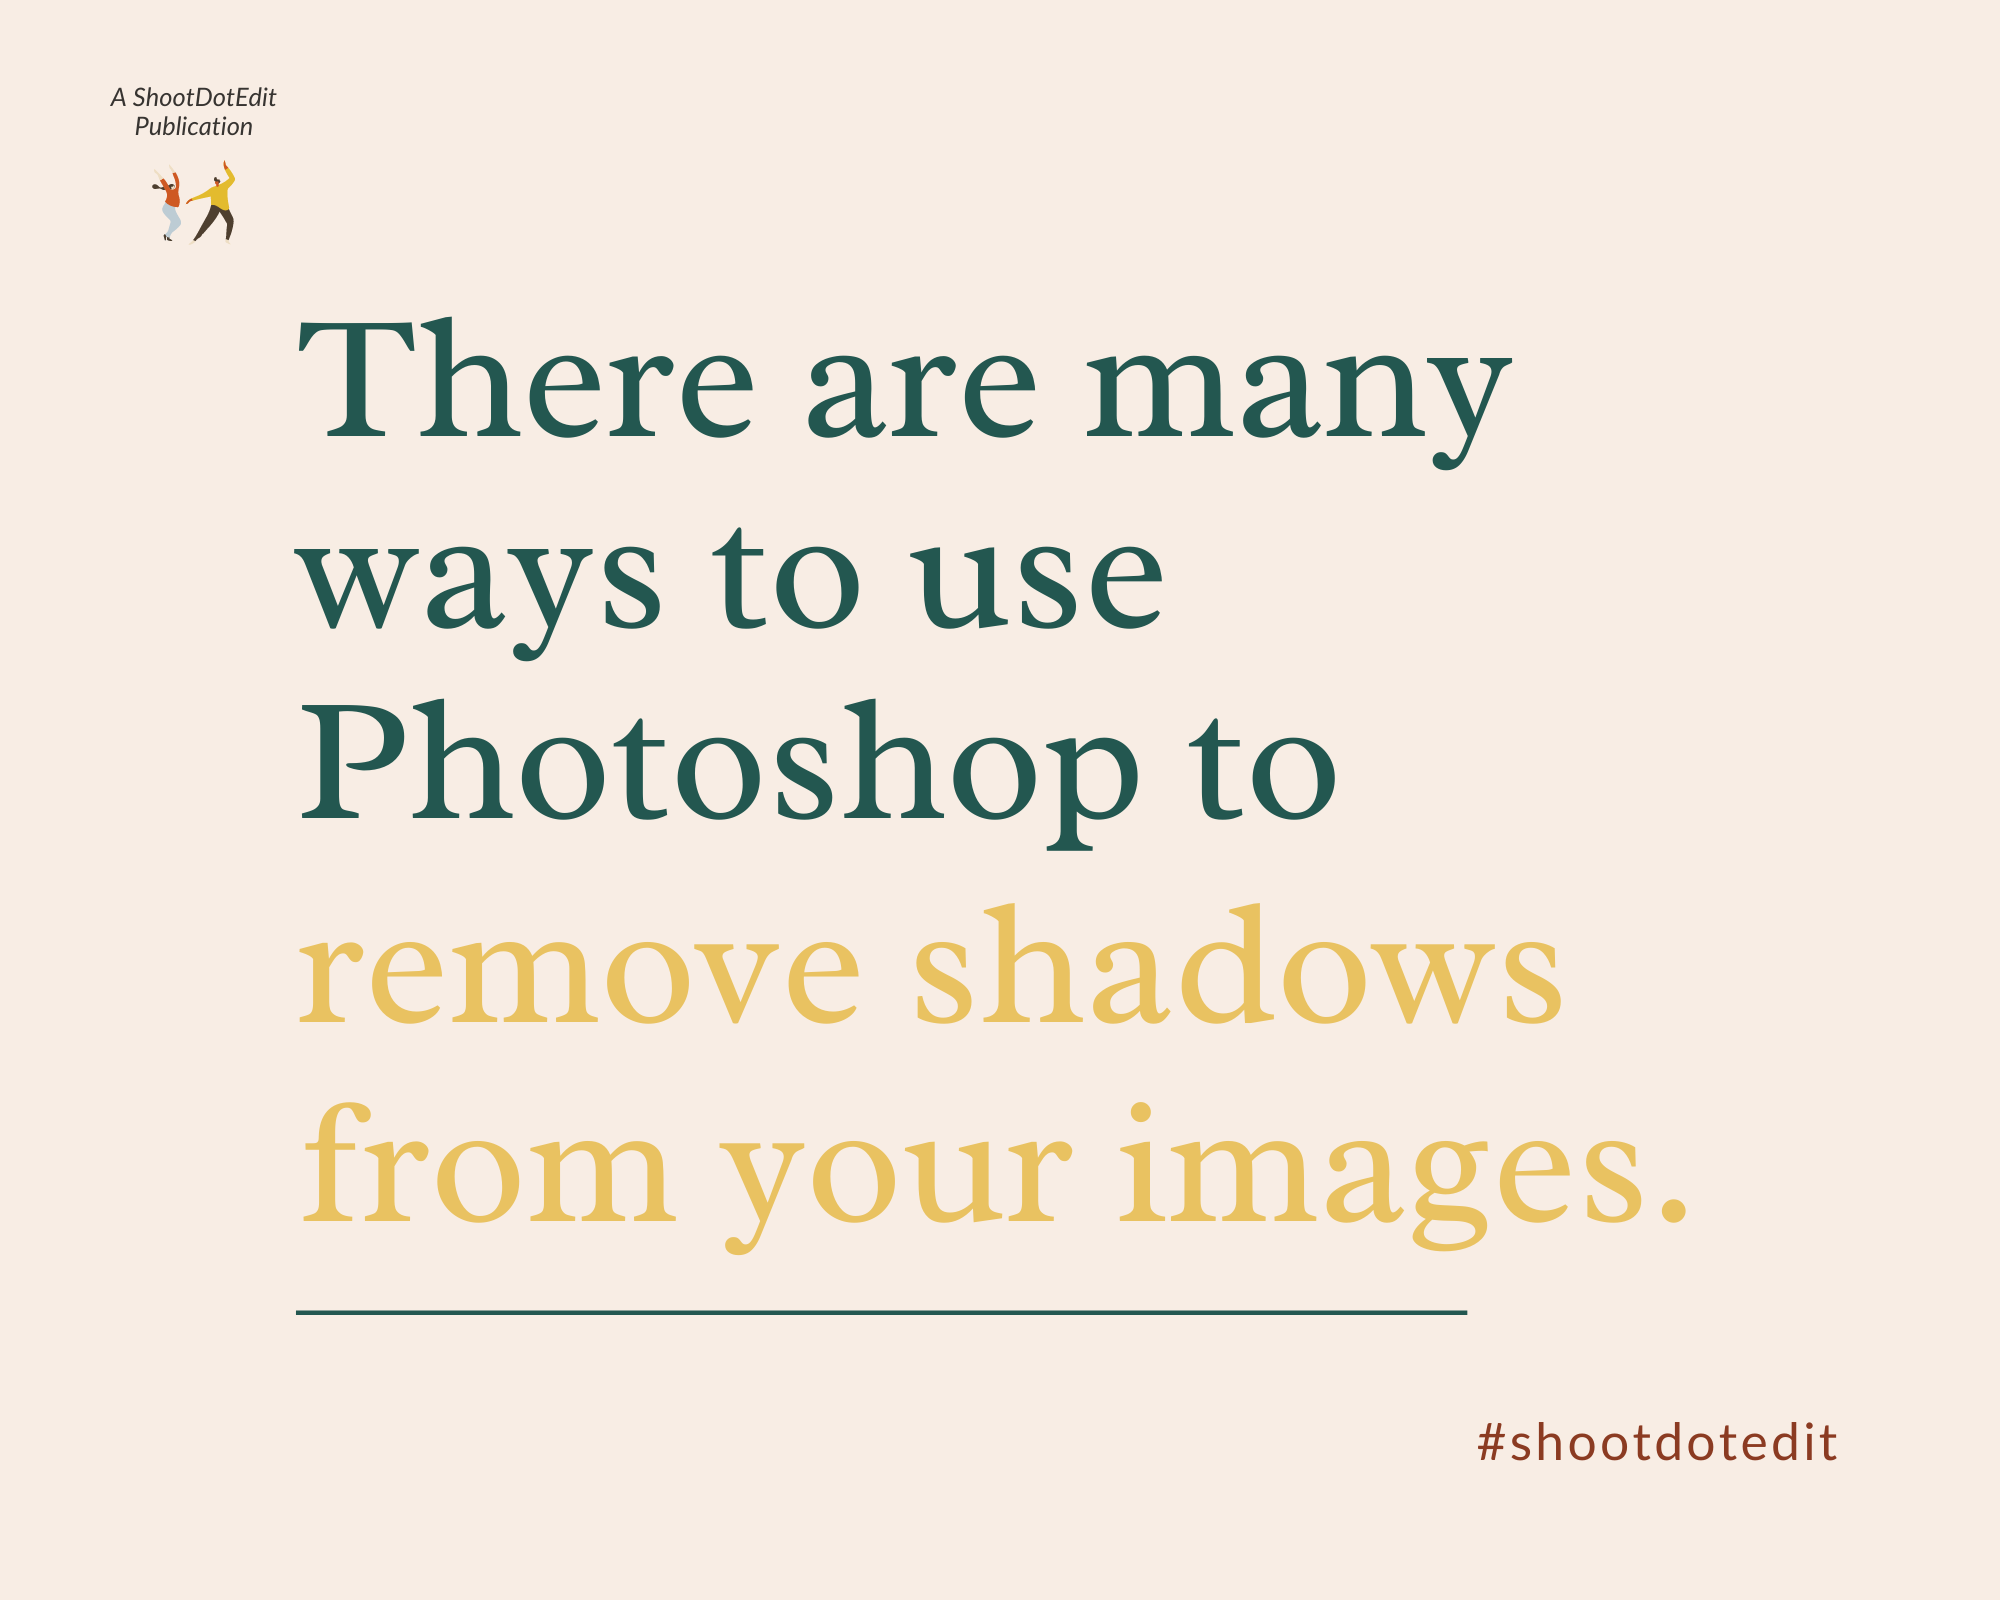 Infographic stating there are many ways to use Photoshop to remove shadows from your images